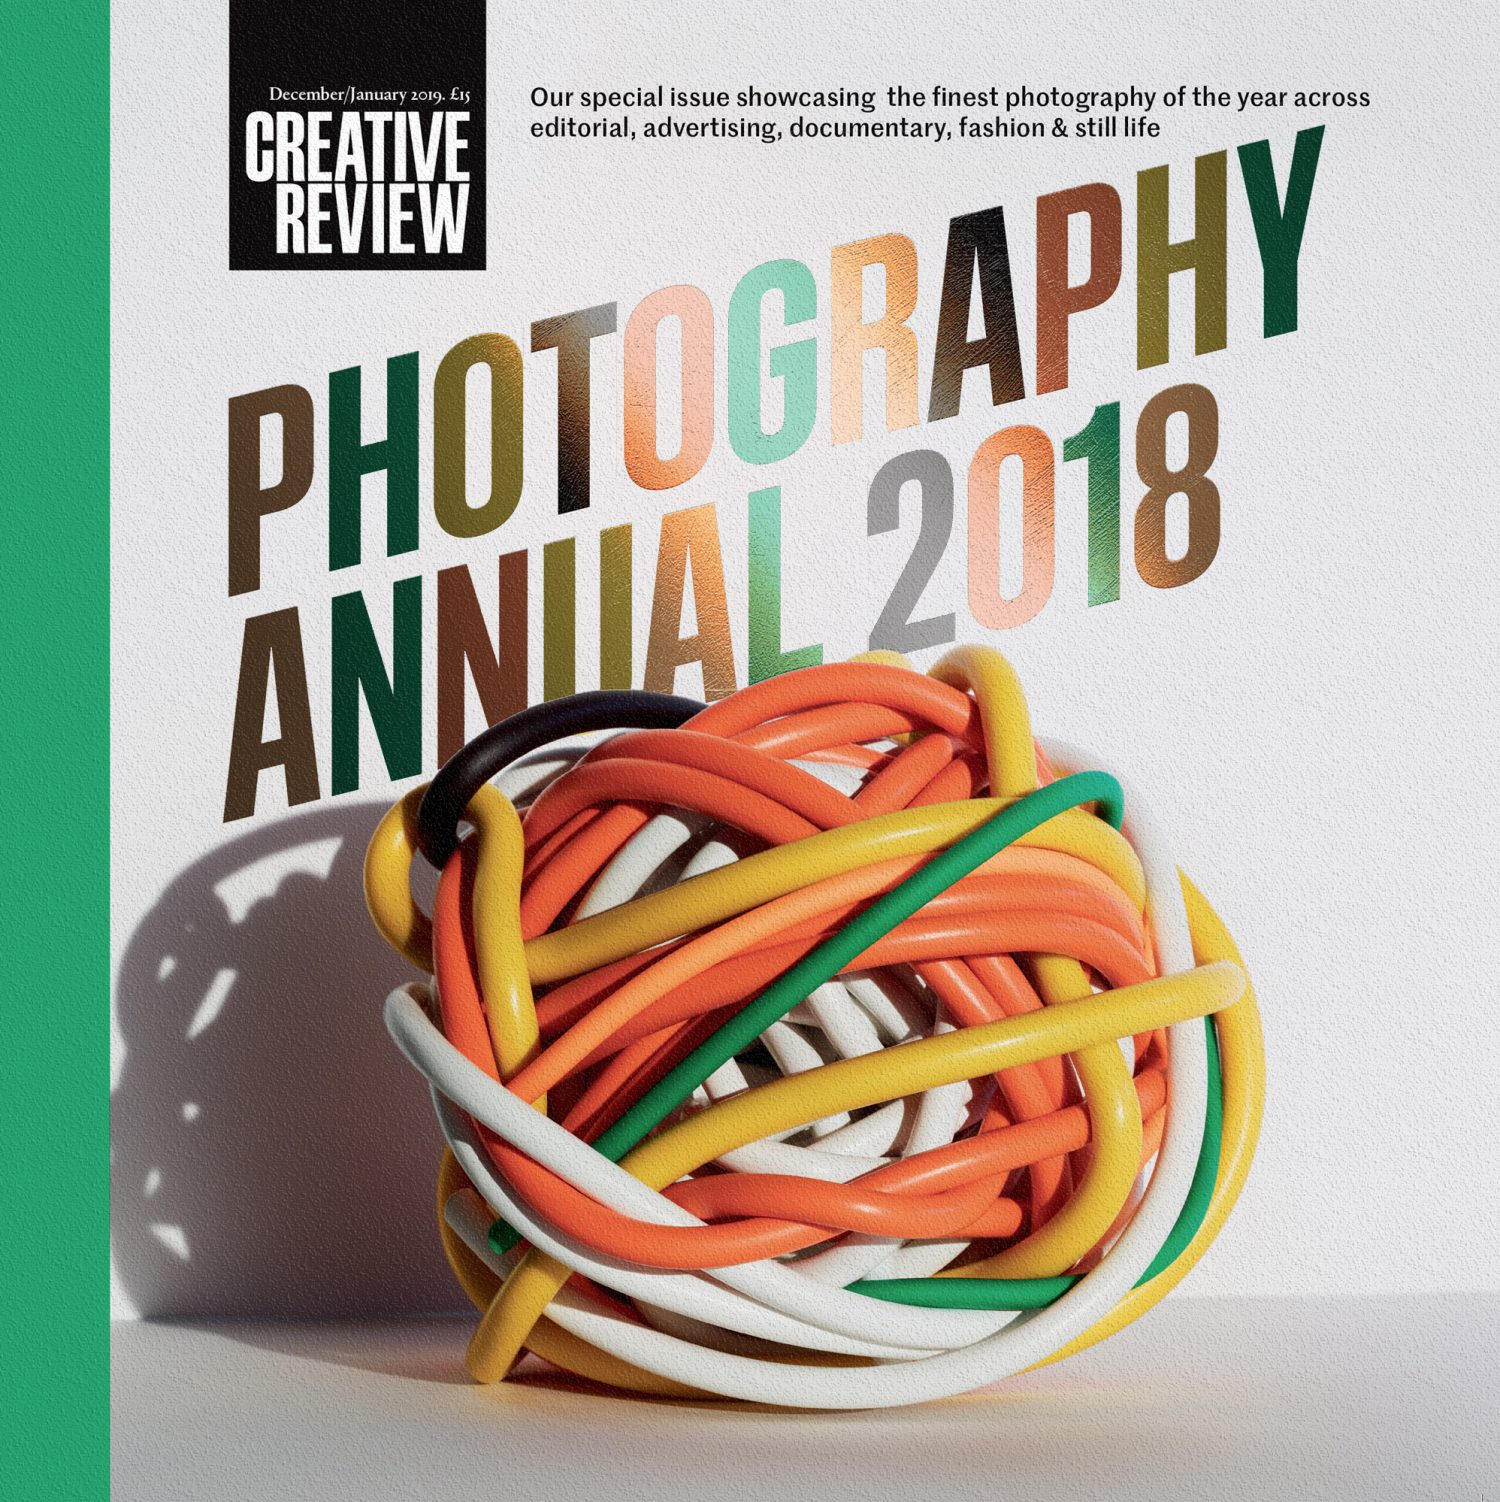 Creative Review Photography Annual 2018 - Crystal Press